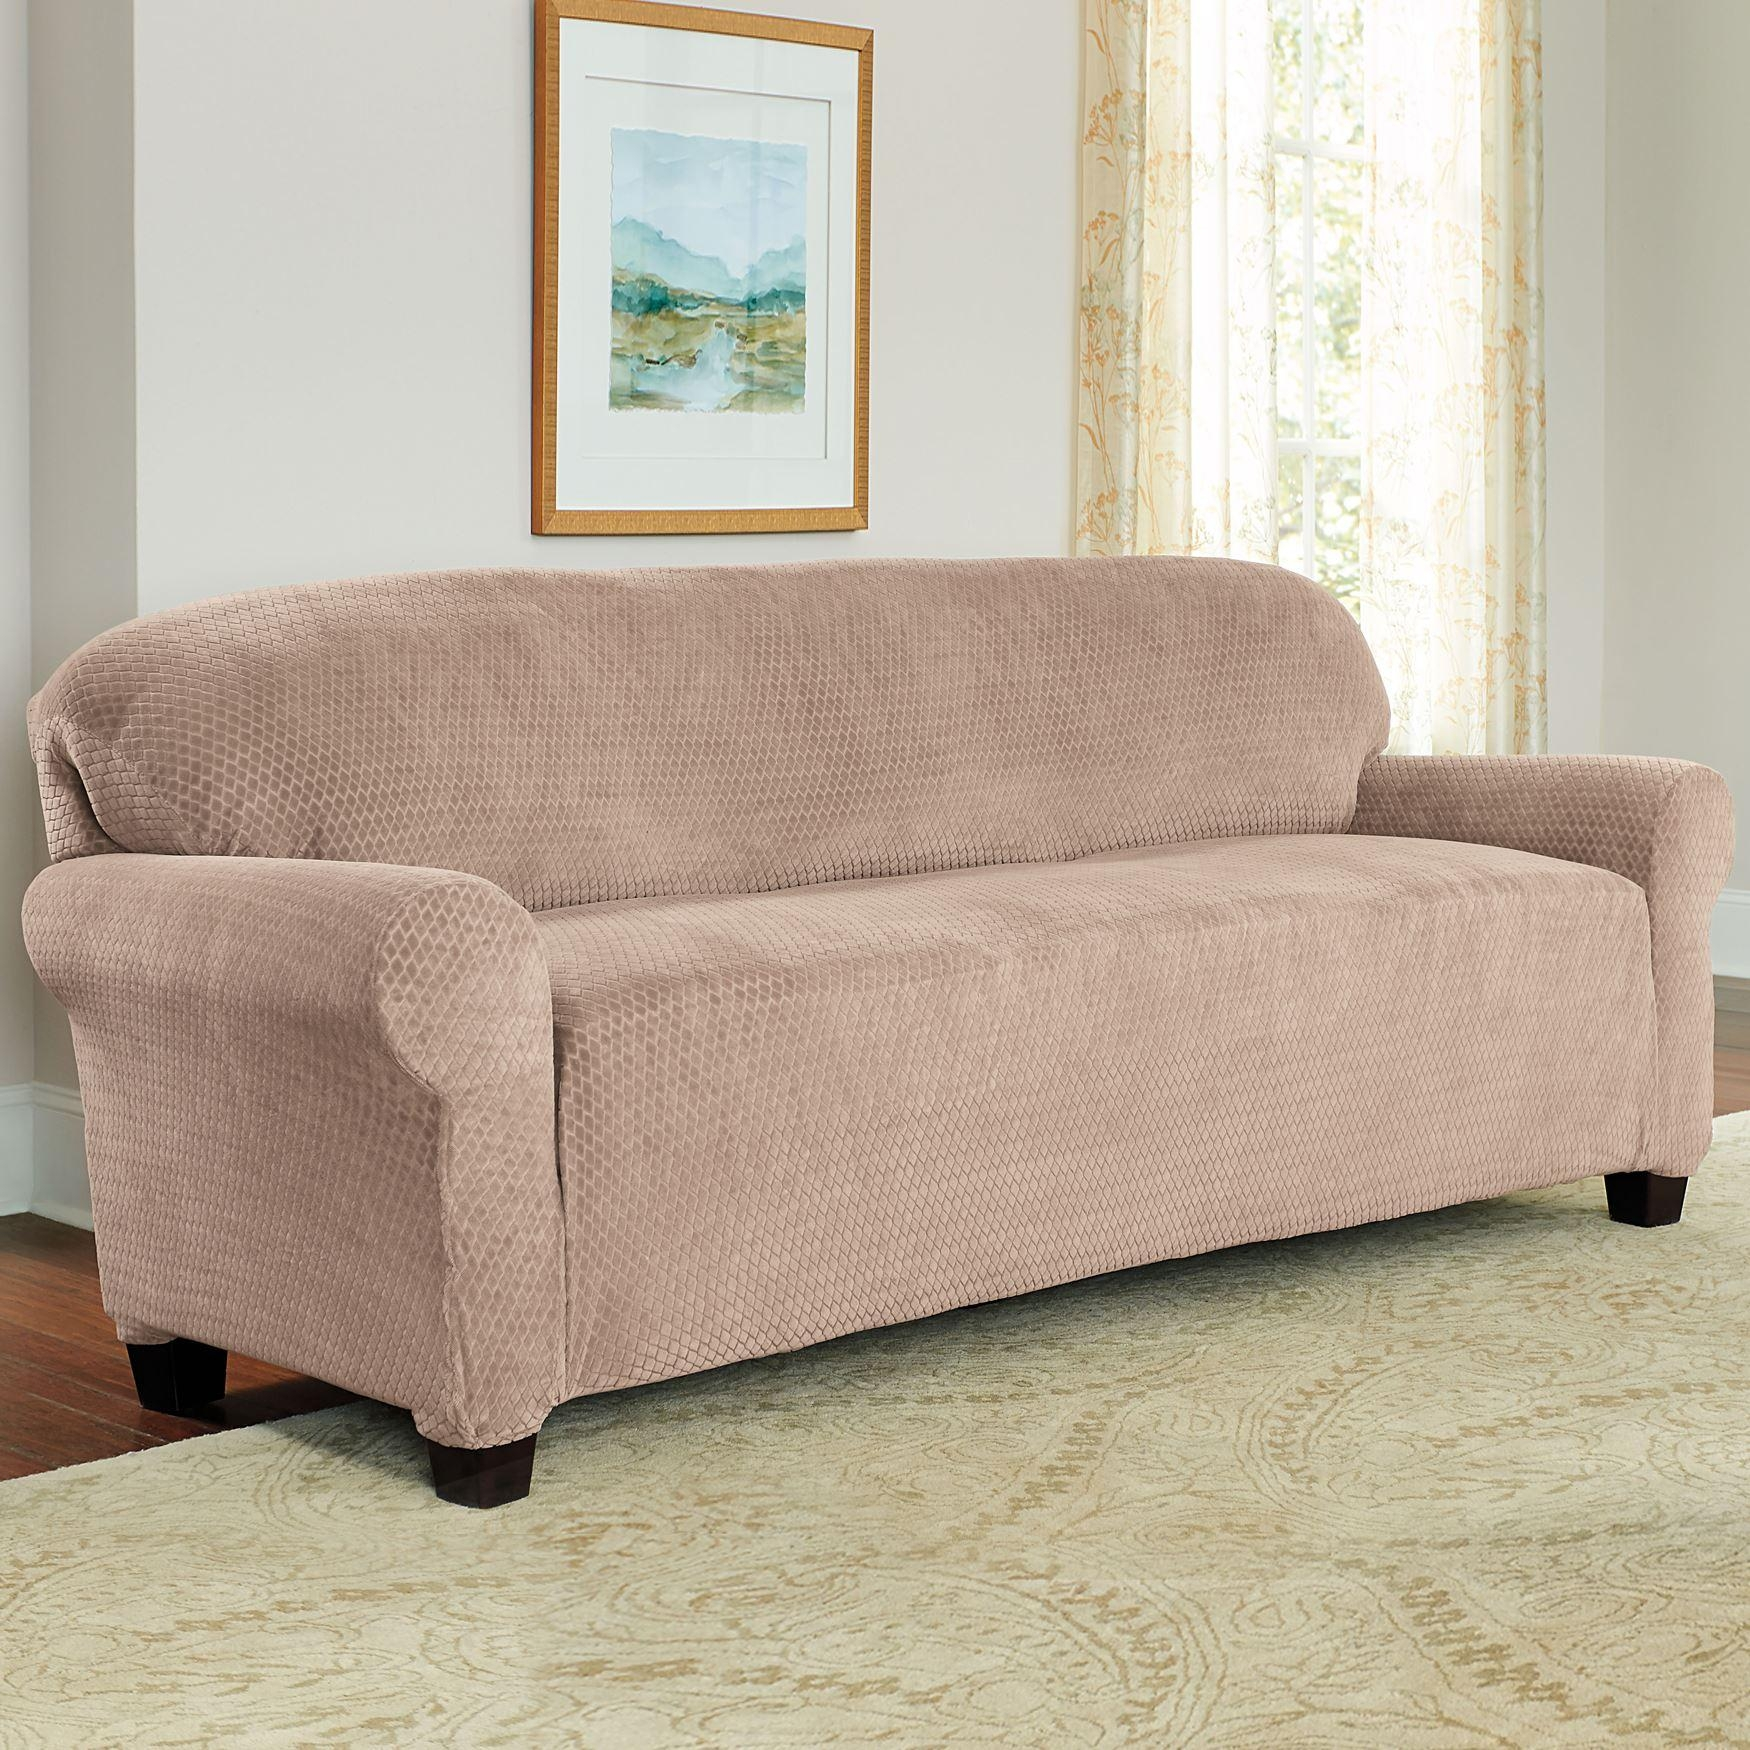 Sofas : Awesome Sofa Protector Couch Arm Covers Sure Fit Sofa With Large Sofa Slipcovers (Image 14 of 23)